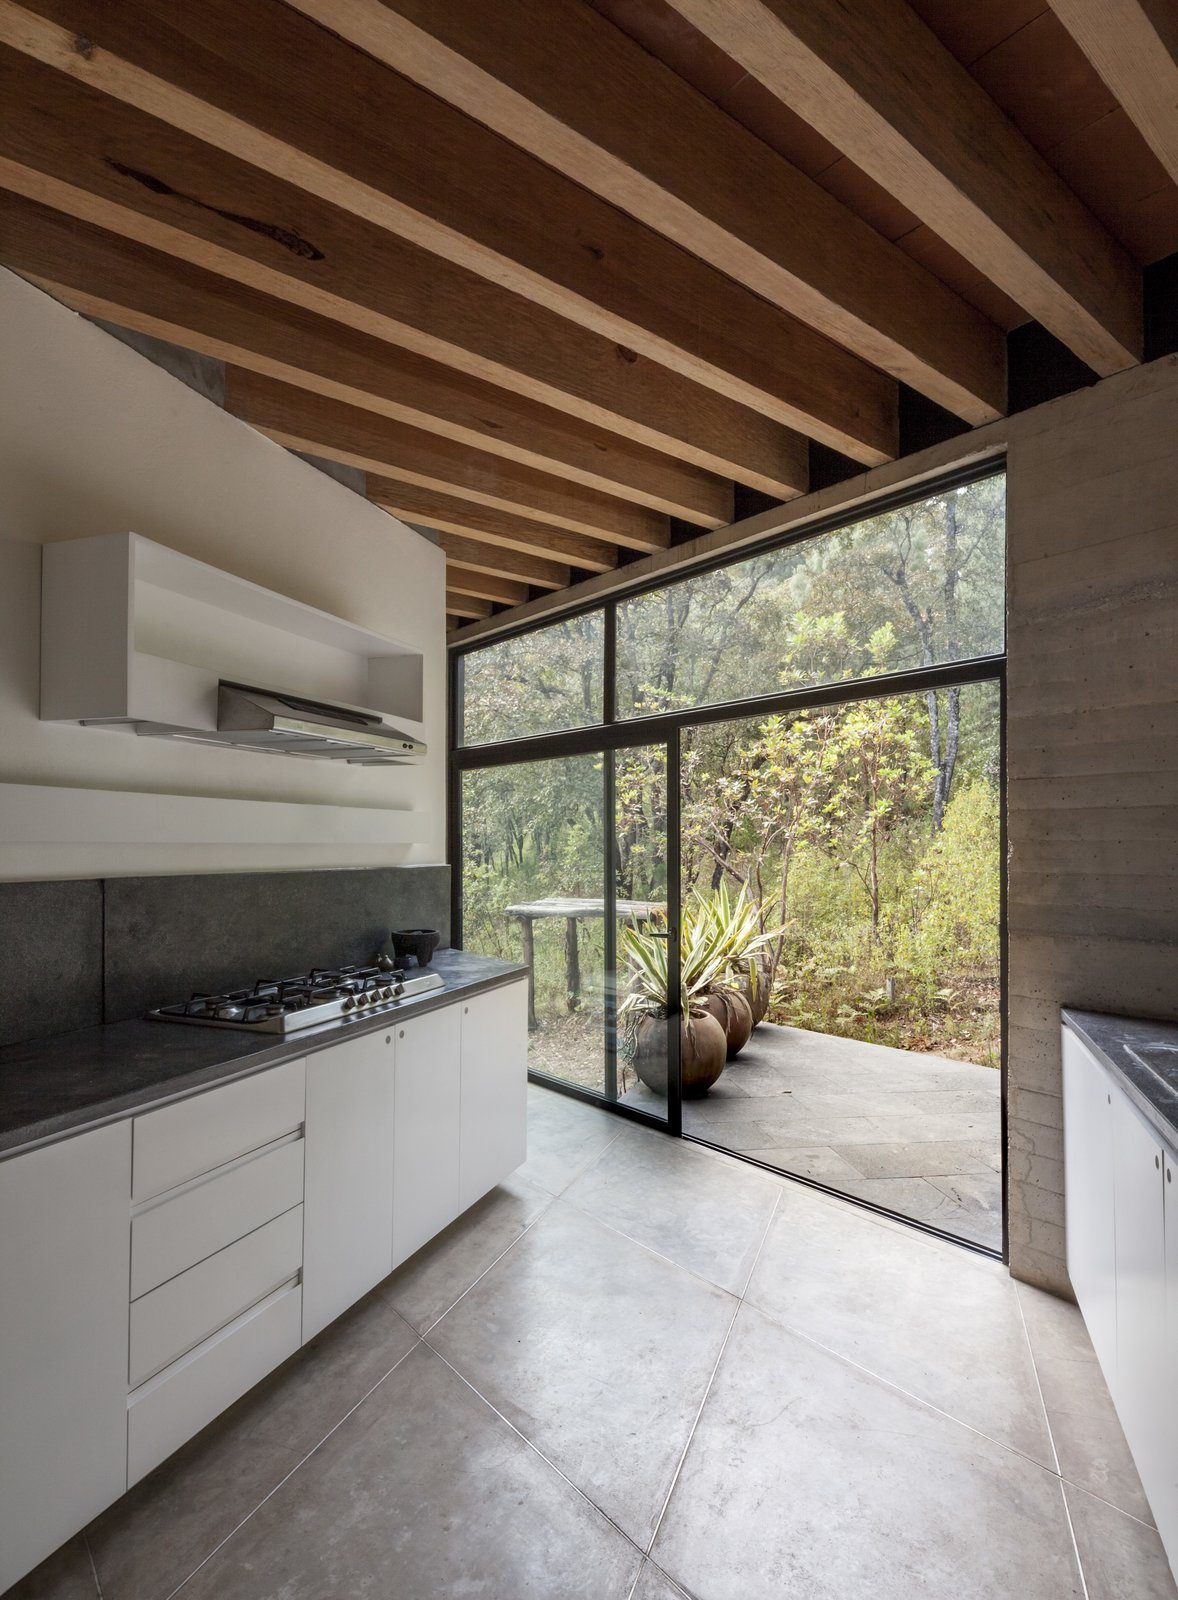 Kitchen, Cooktops, White, Concrete, Concrete, Concrete, and Range Hood The kitchen features a sleek, modern design.  Best Kitchen Concrete Cooktops Photos from Upcycled Trees Cloak This Modern Mexican Home